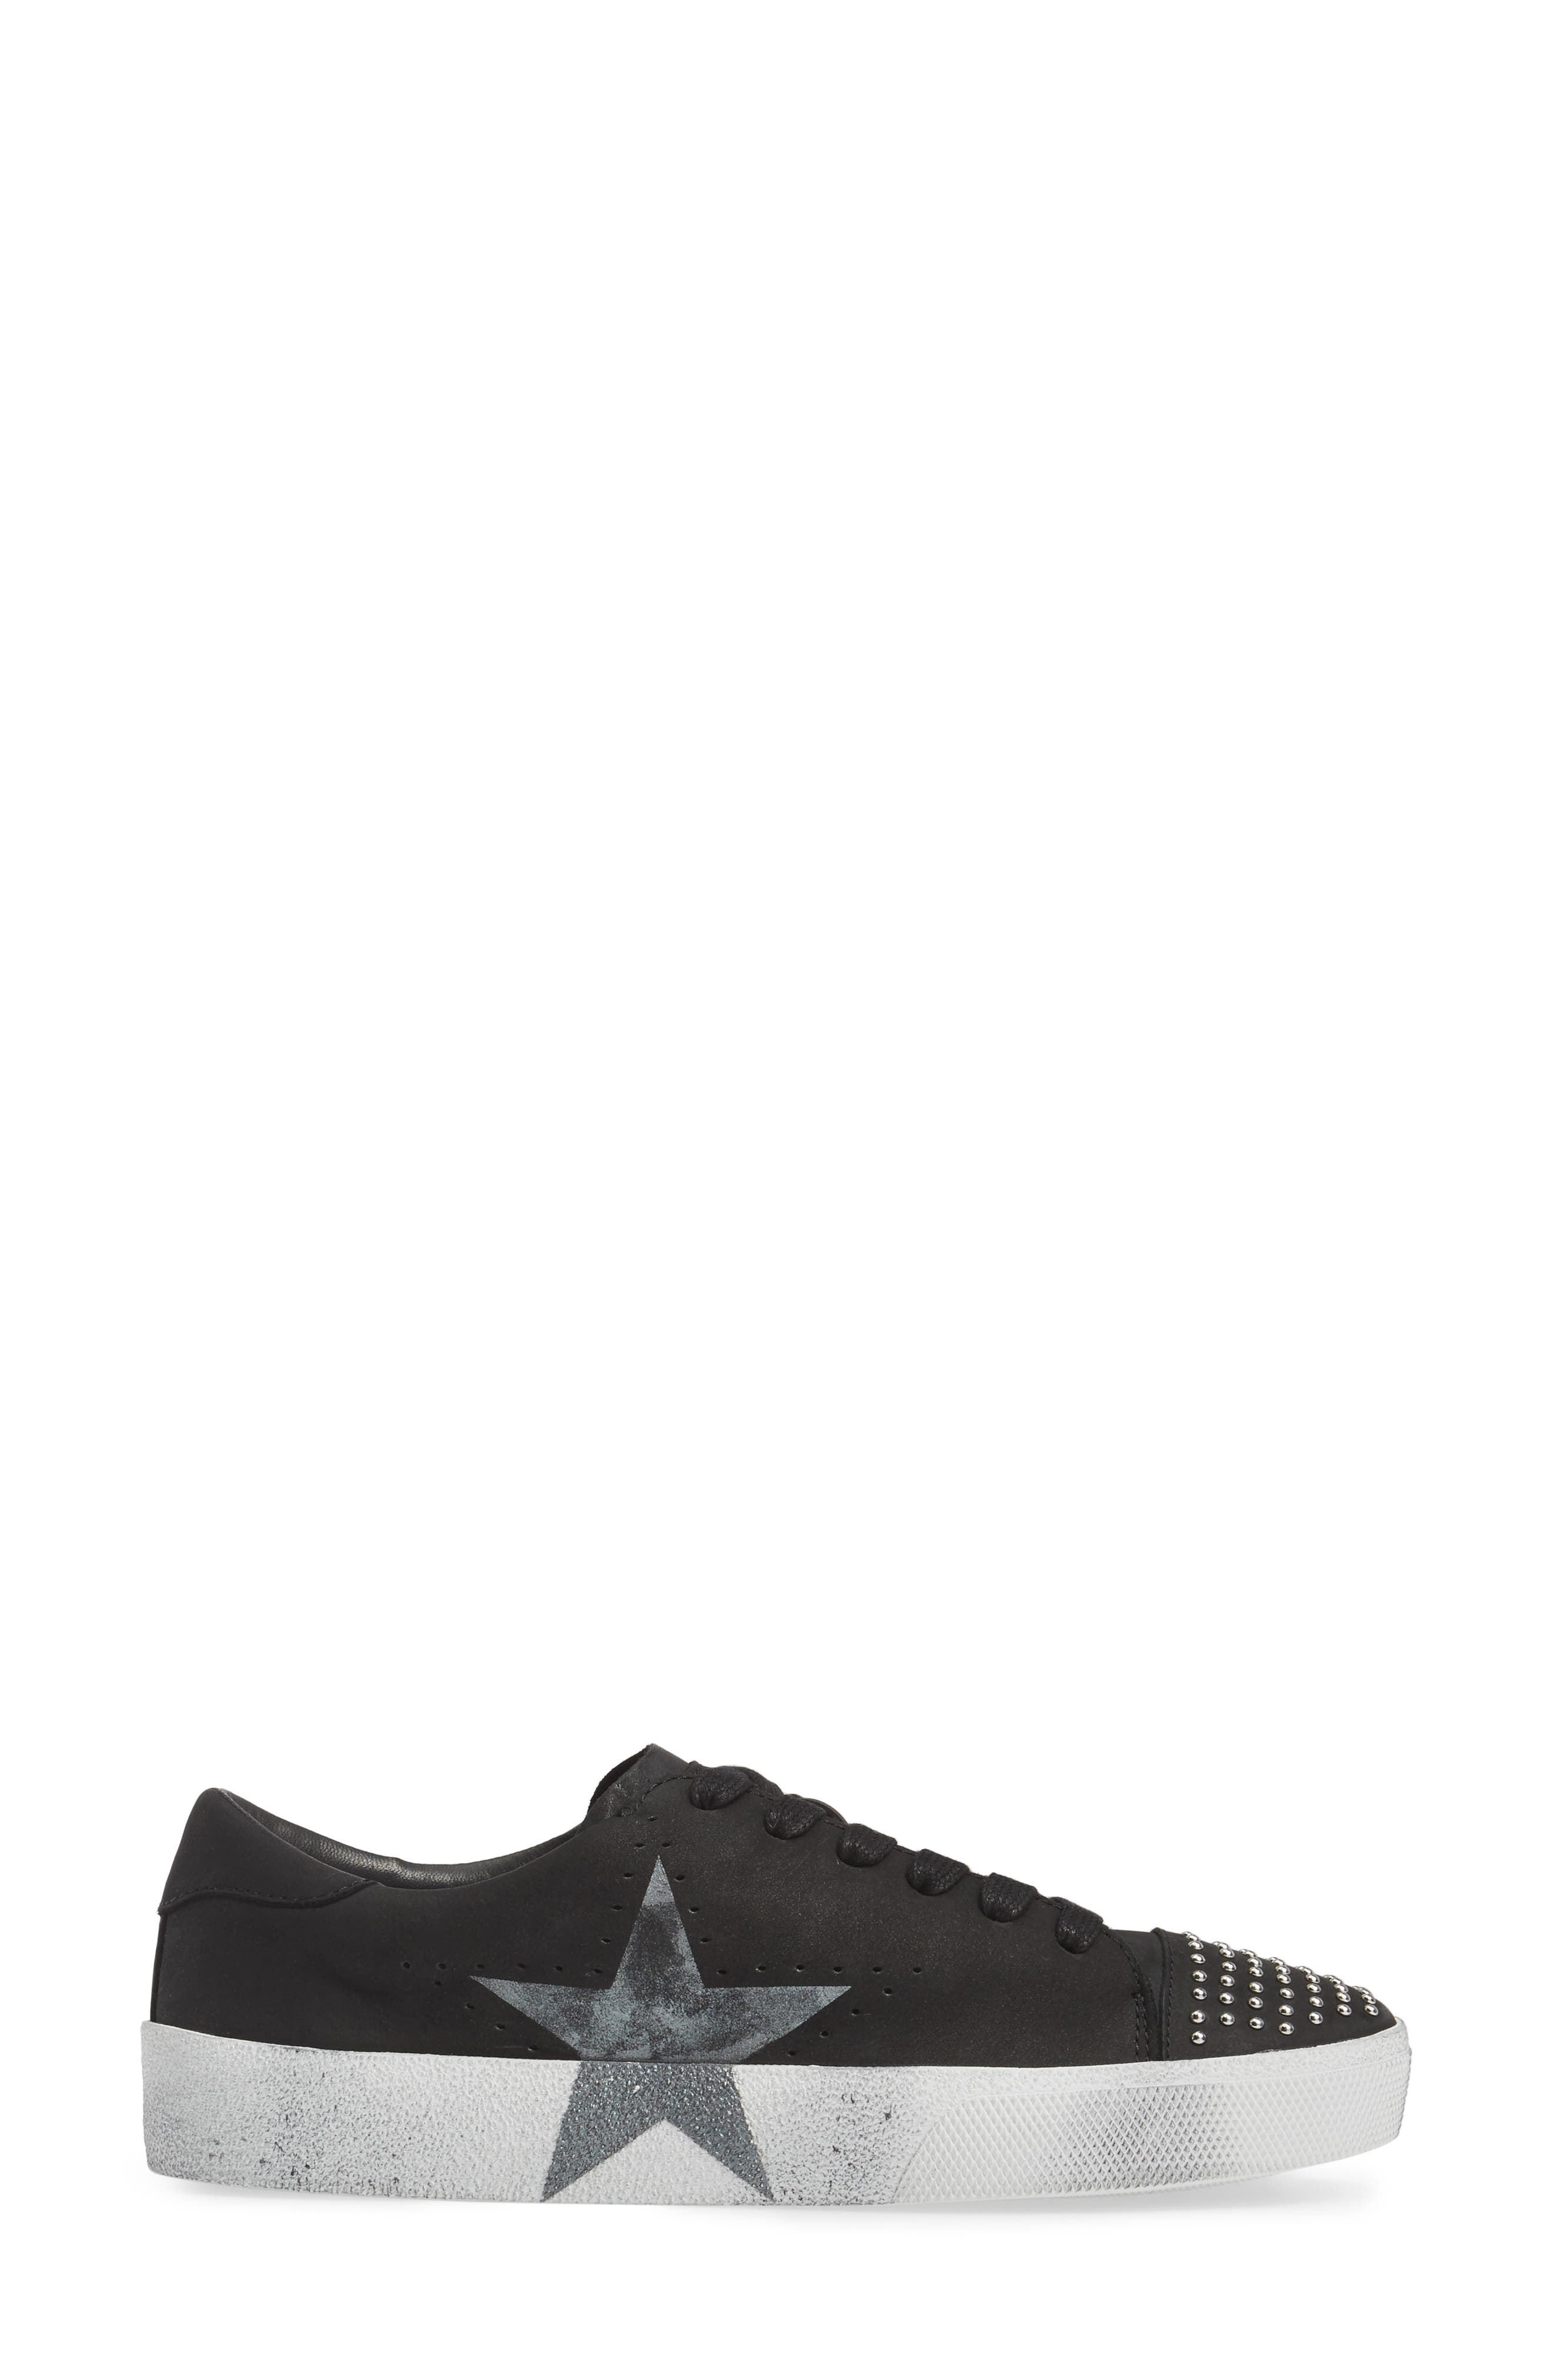 Catcall Studded Sneaker,                             Alternate thumbnail 3, color,                             002